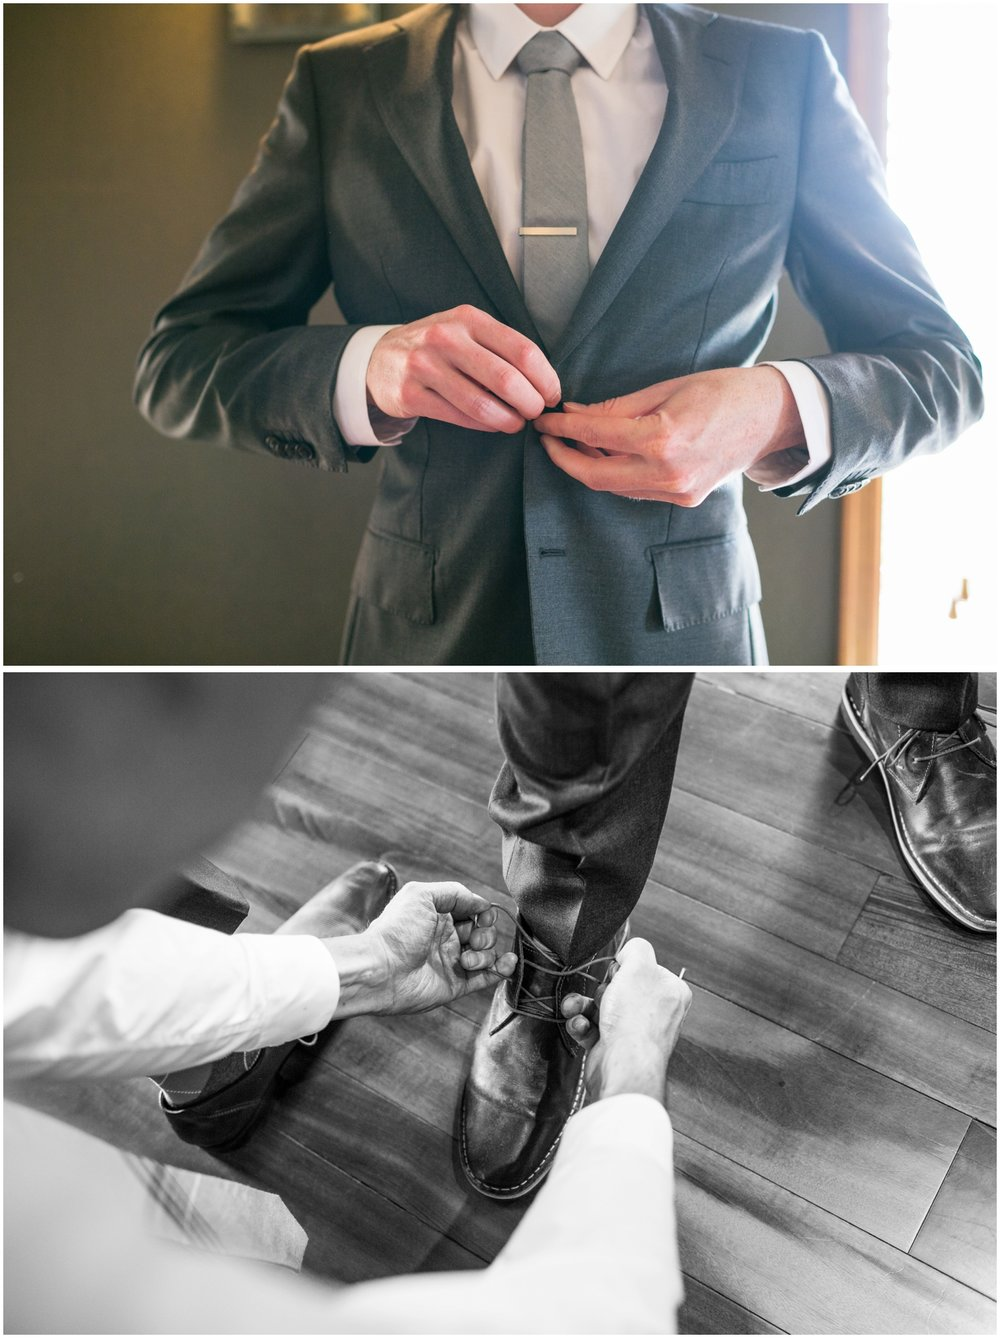 Denver_Wedding_Photographer_Groom_Putting_On _Suit.JPG